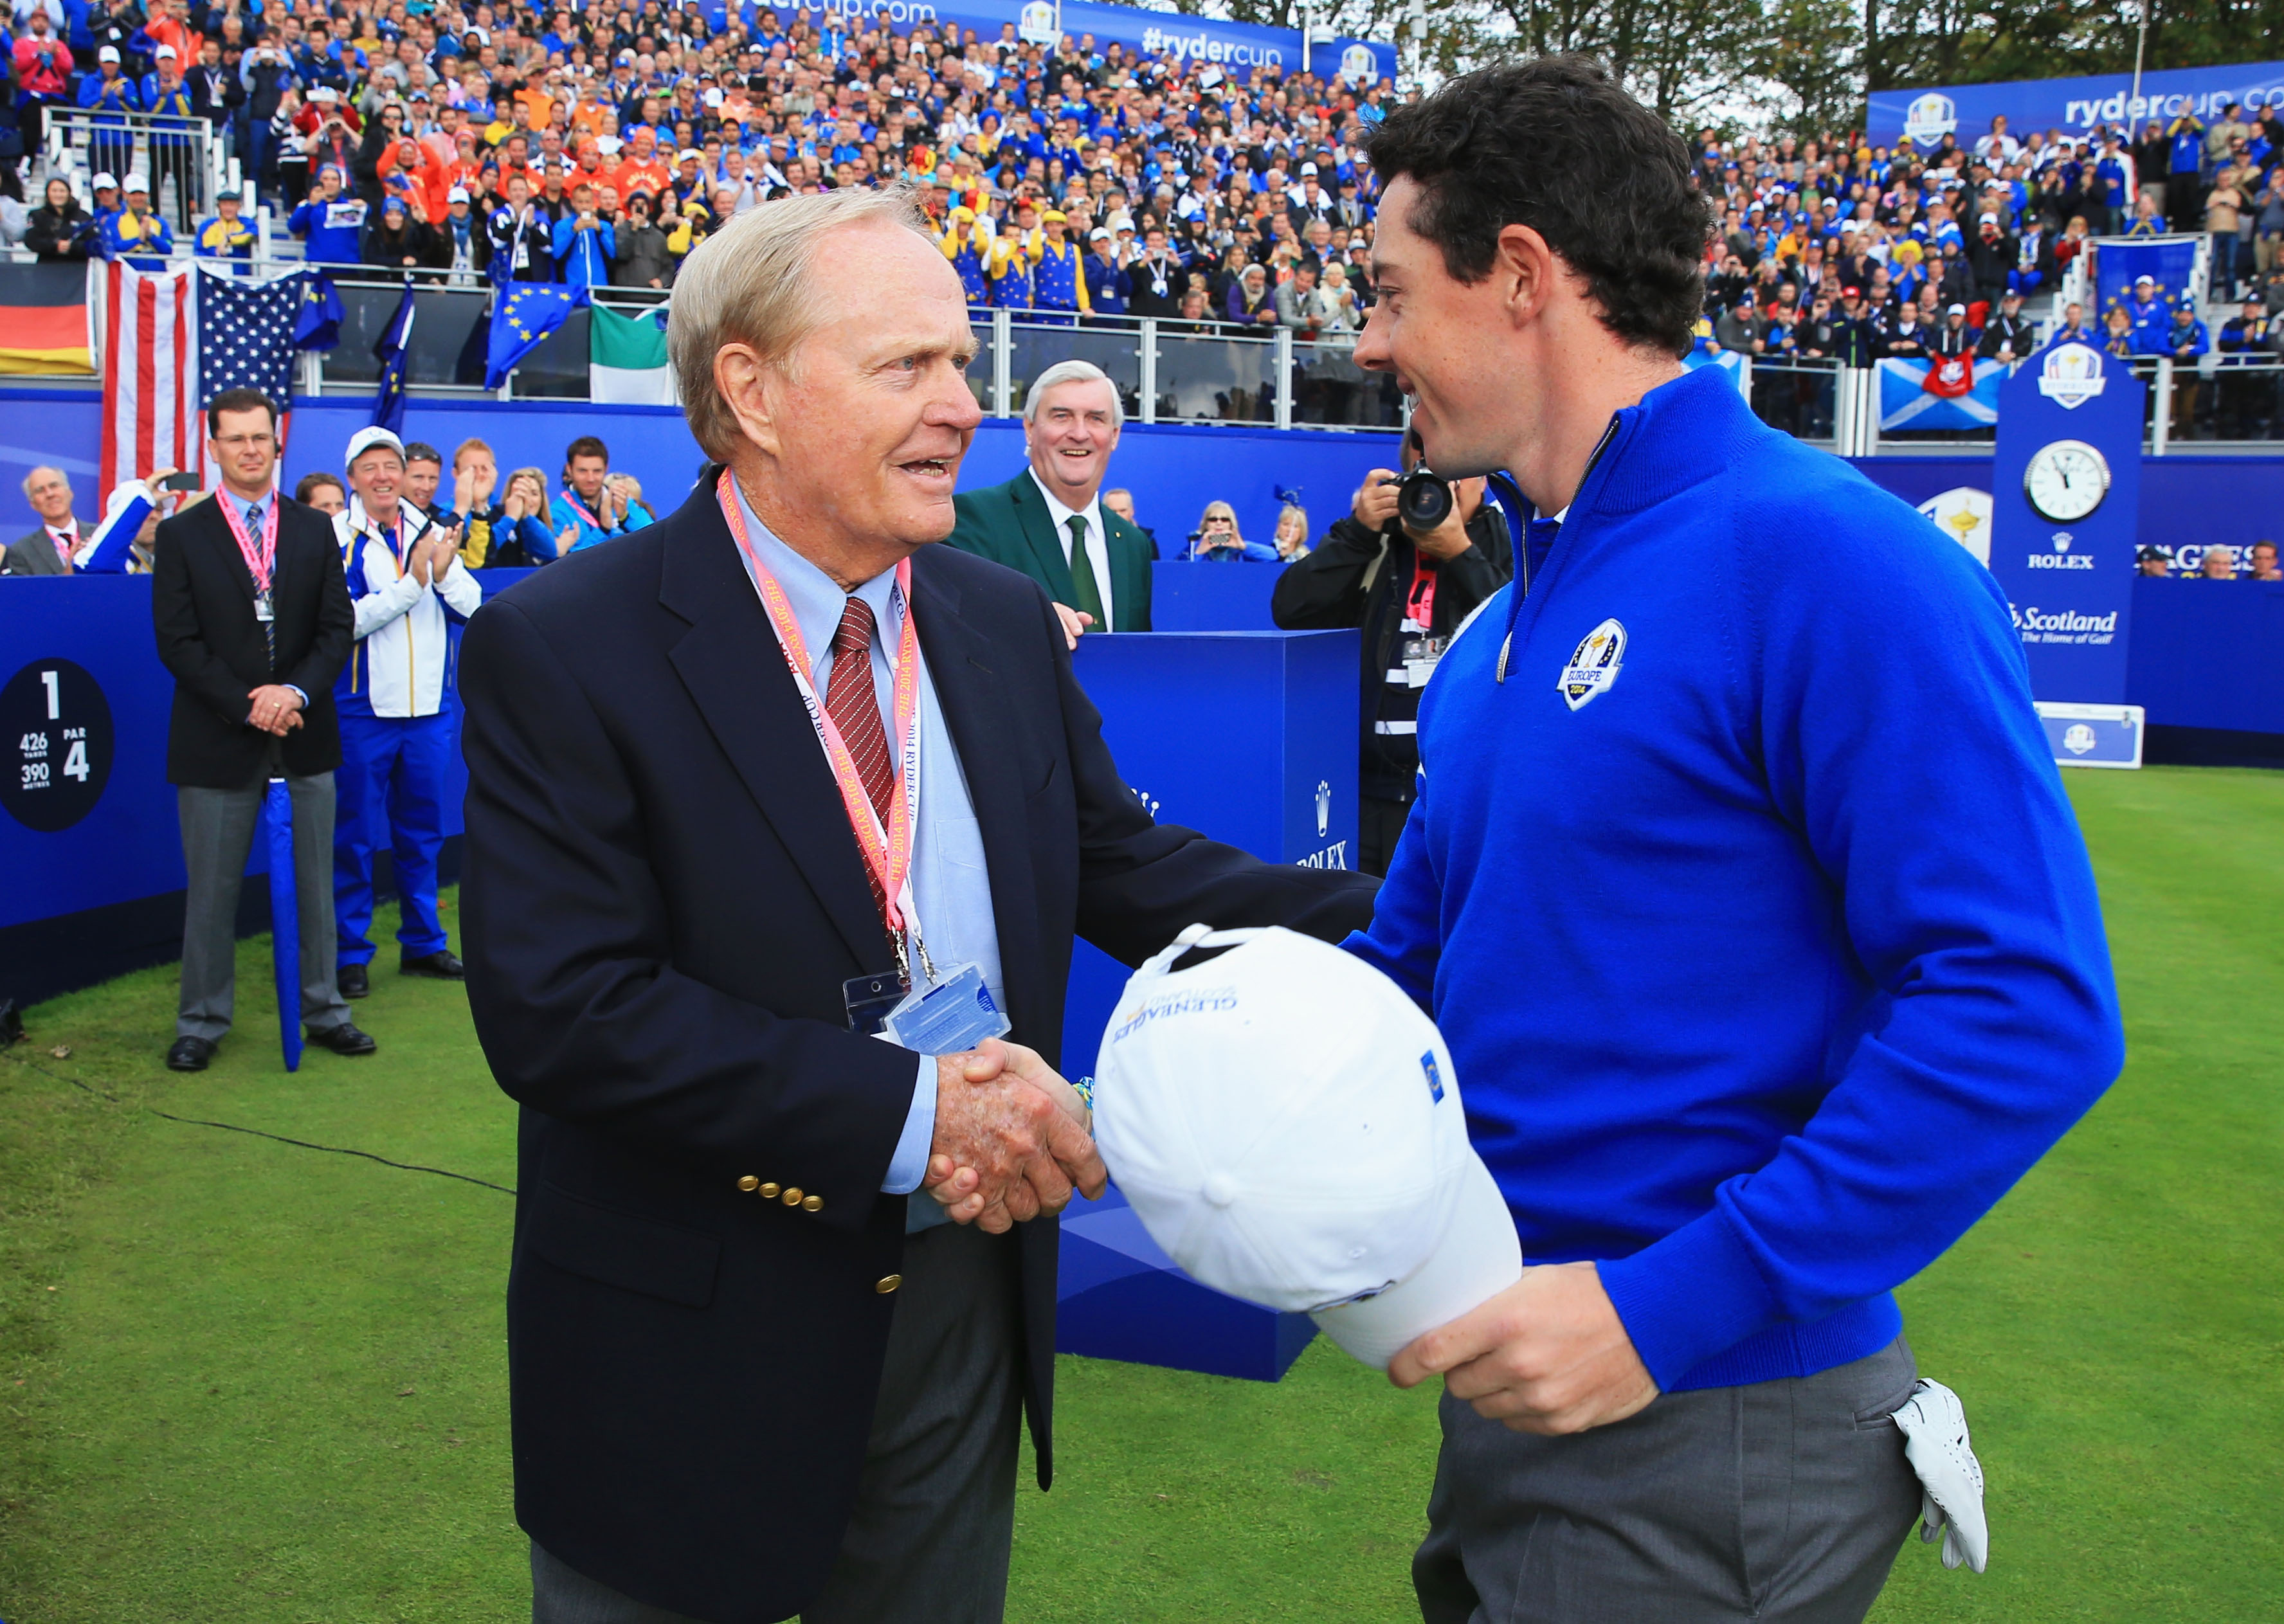 McIlroy has played Memorial every year since his debut in 2010 (Photo: Getty Images)